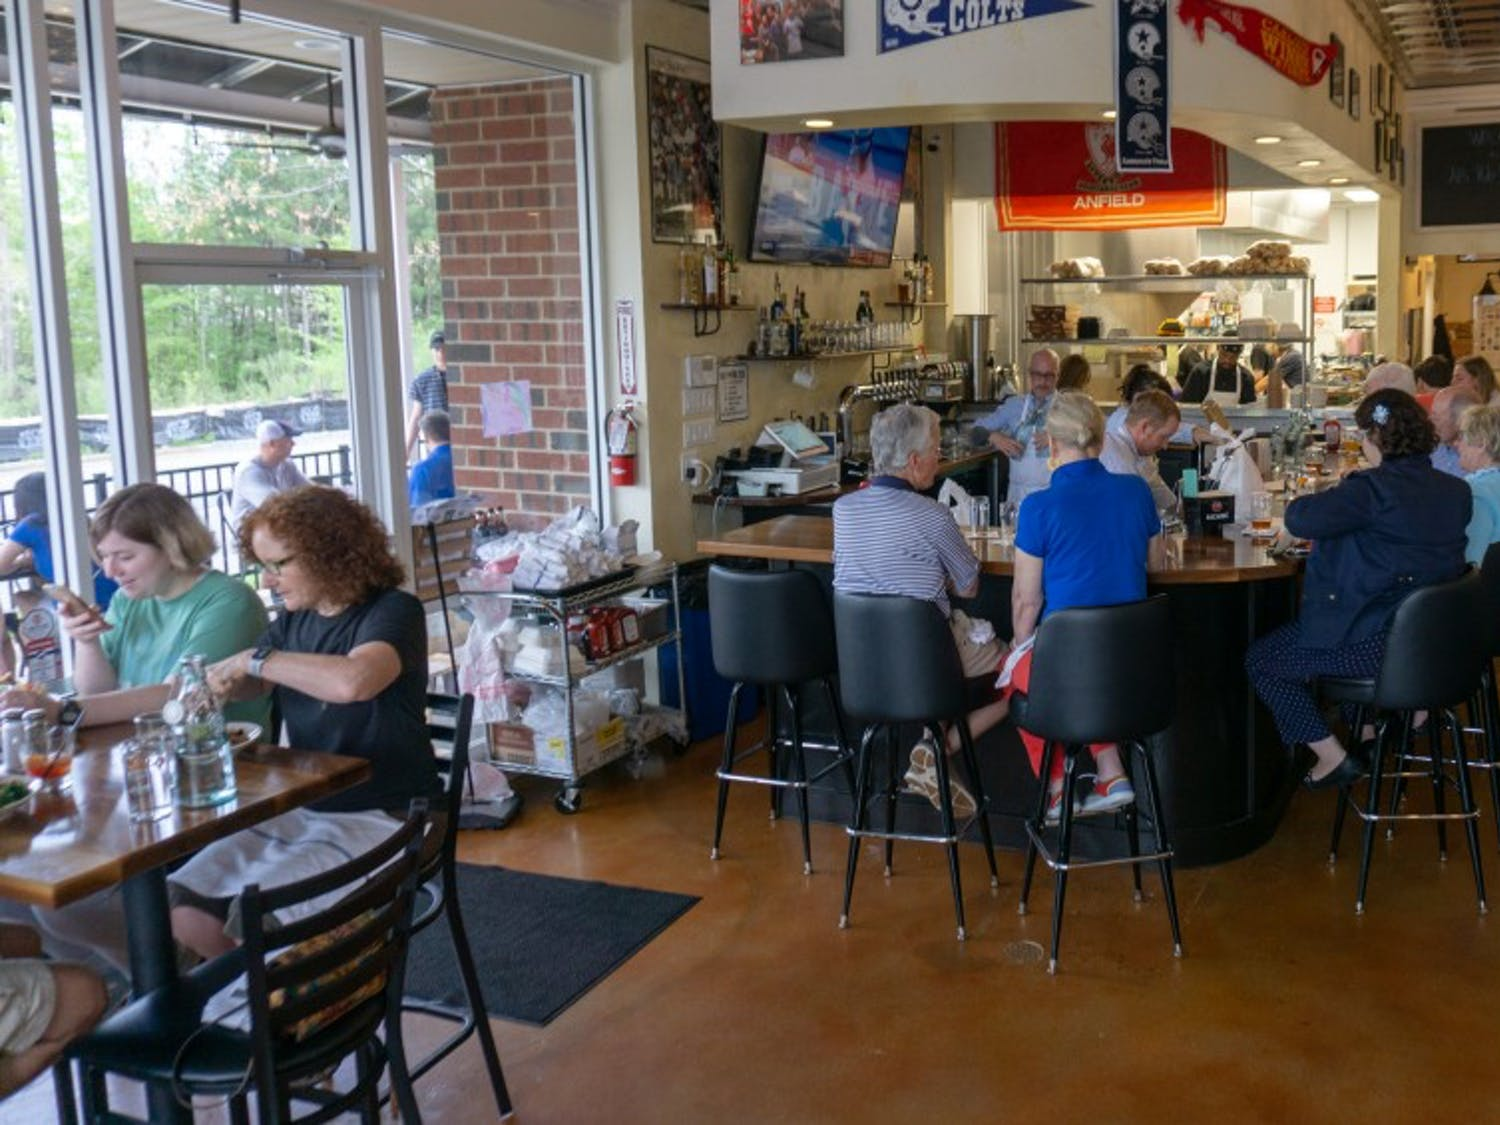 Al's Pub Shack is now open to the residents of Chapel Hill, N.C. Al's is a place where old friends gather and new friends meet.